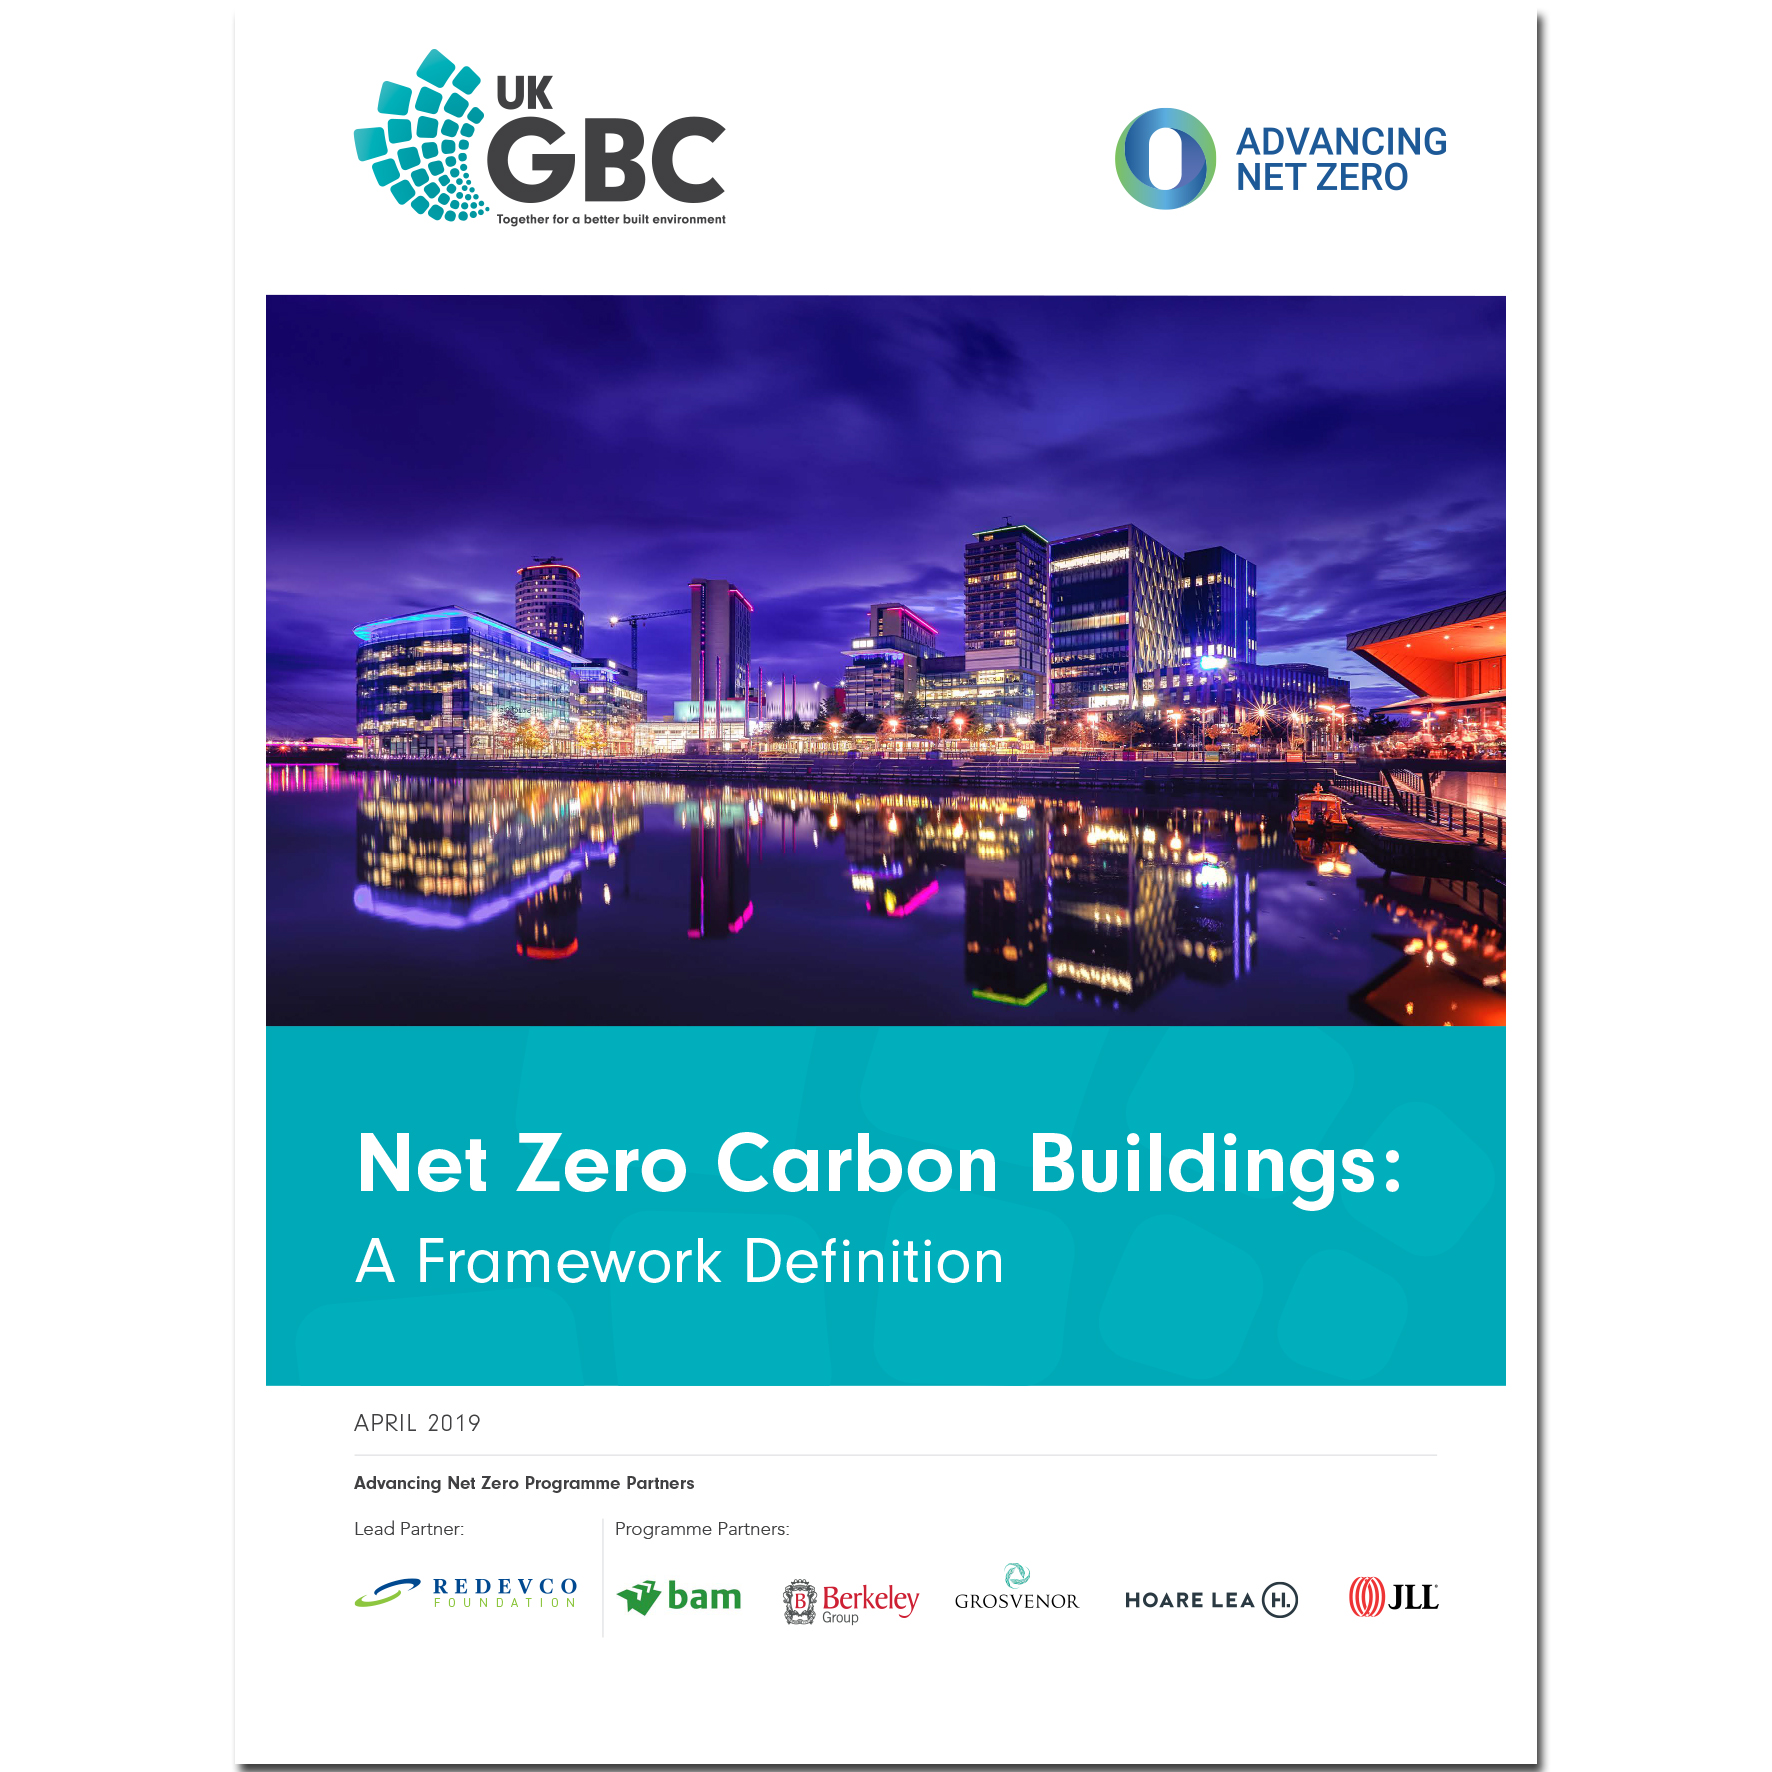 Net Zero Carbon Buildings: A Framework Definition